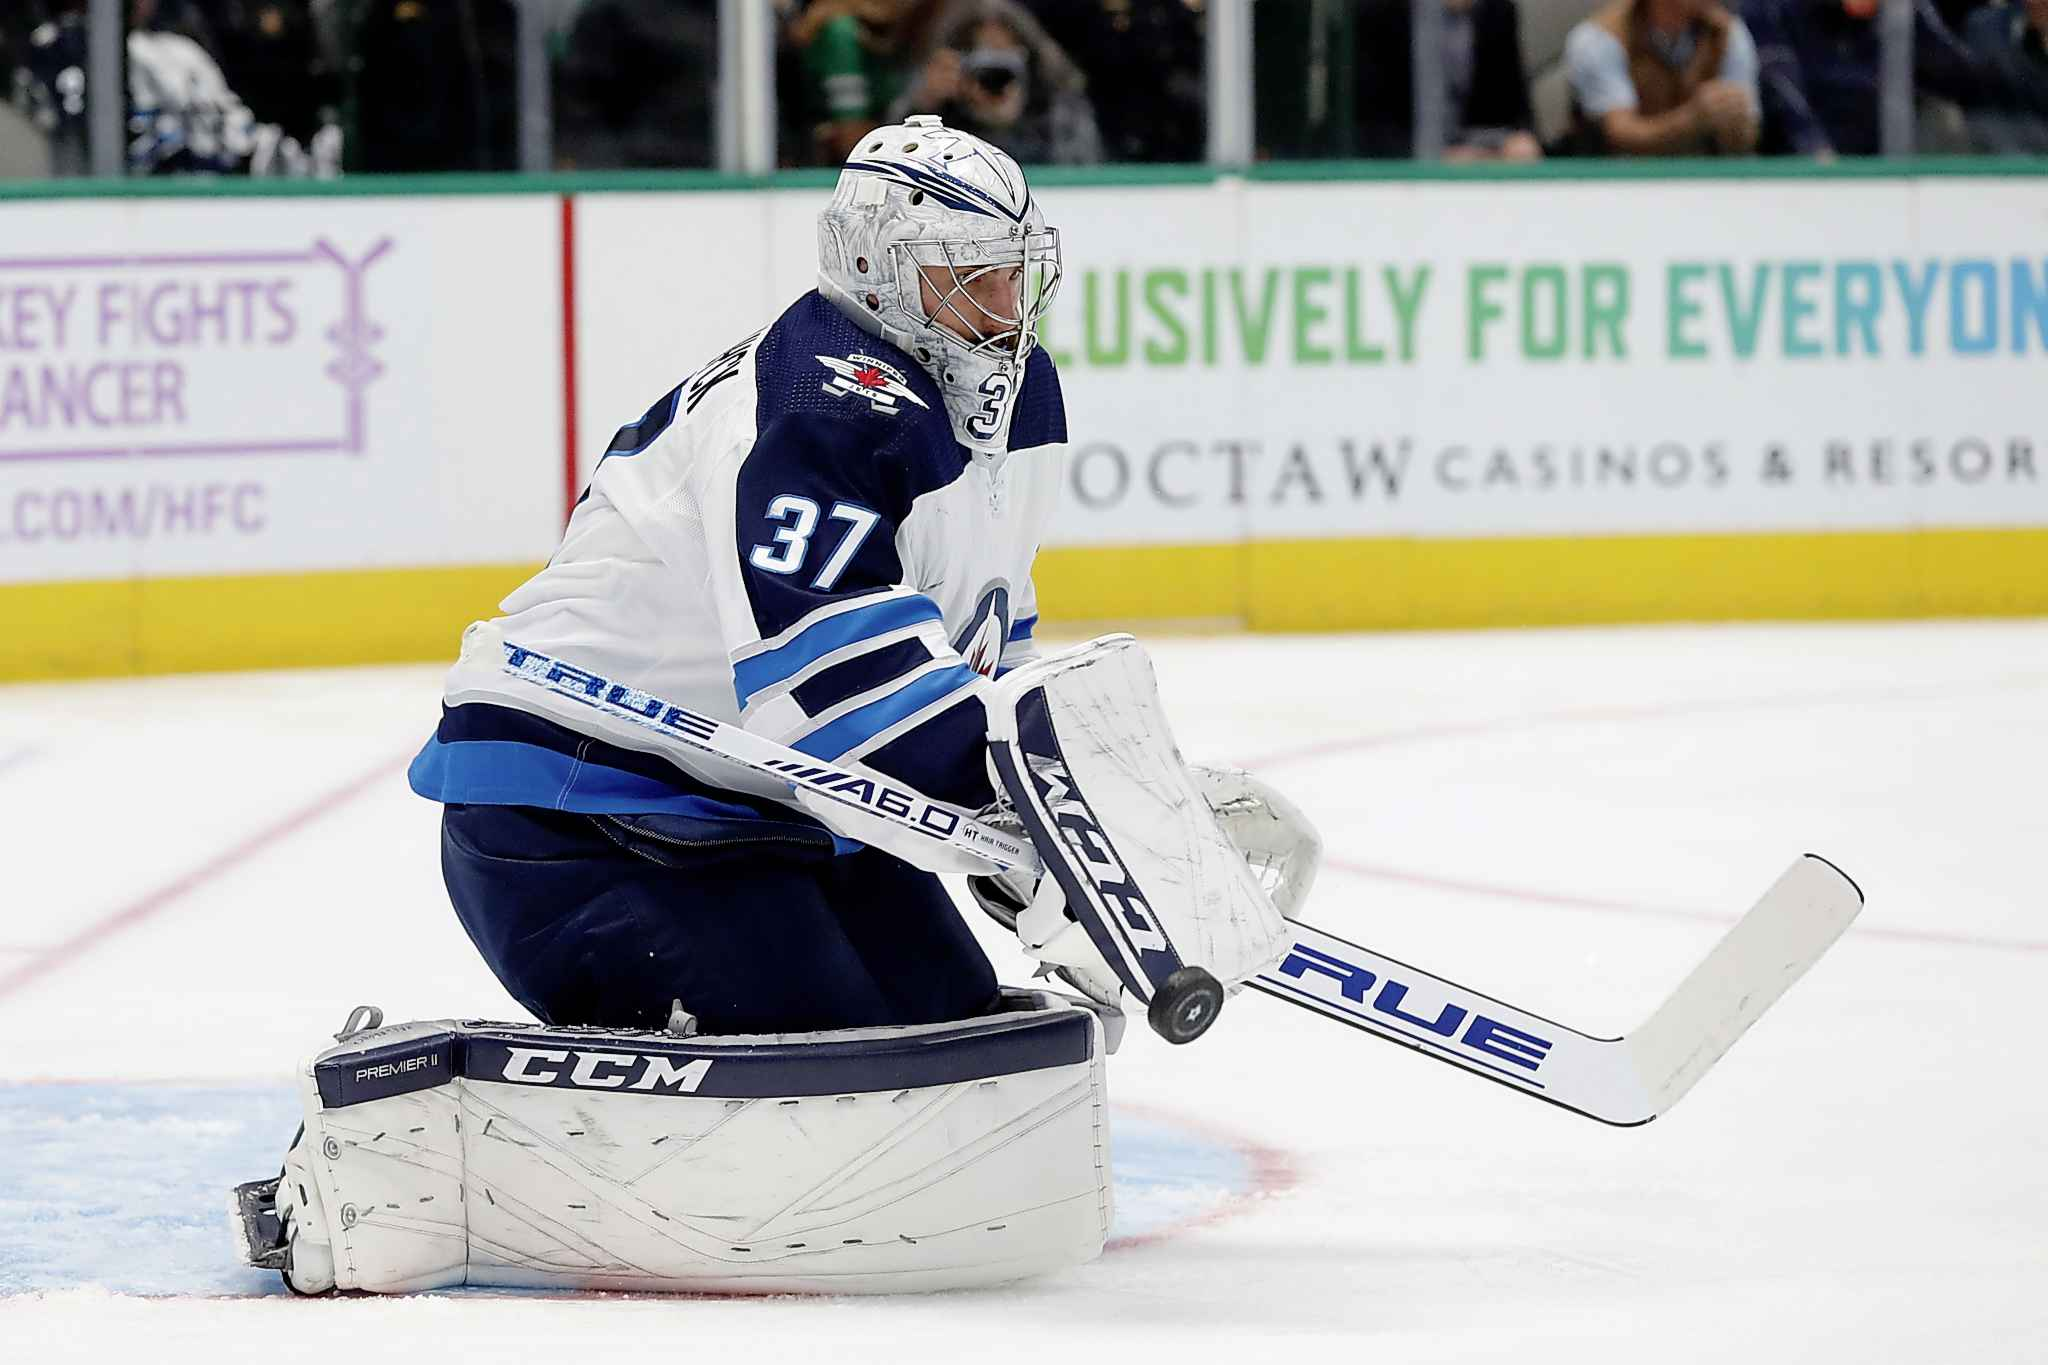 Winnipeg Jets goaltender Connor Hellebuyck blocks a shot from the Dallas Stars in the first period.